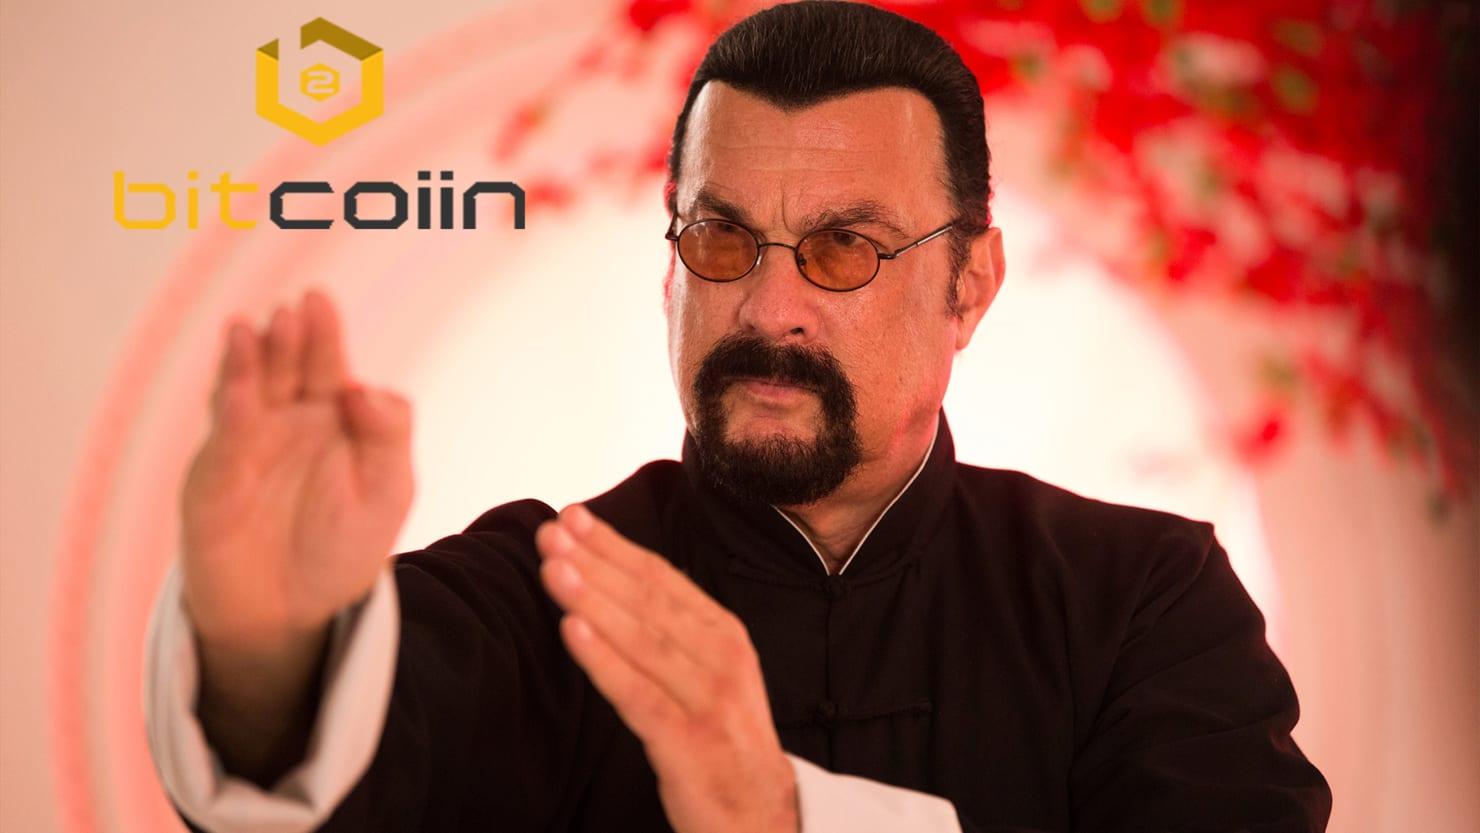 Steven Seagal, a Lacking Non-public Recognize, and an Alleged Crypto Fraud